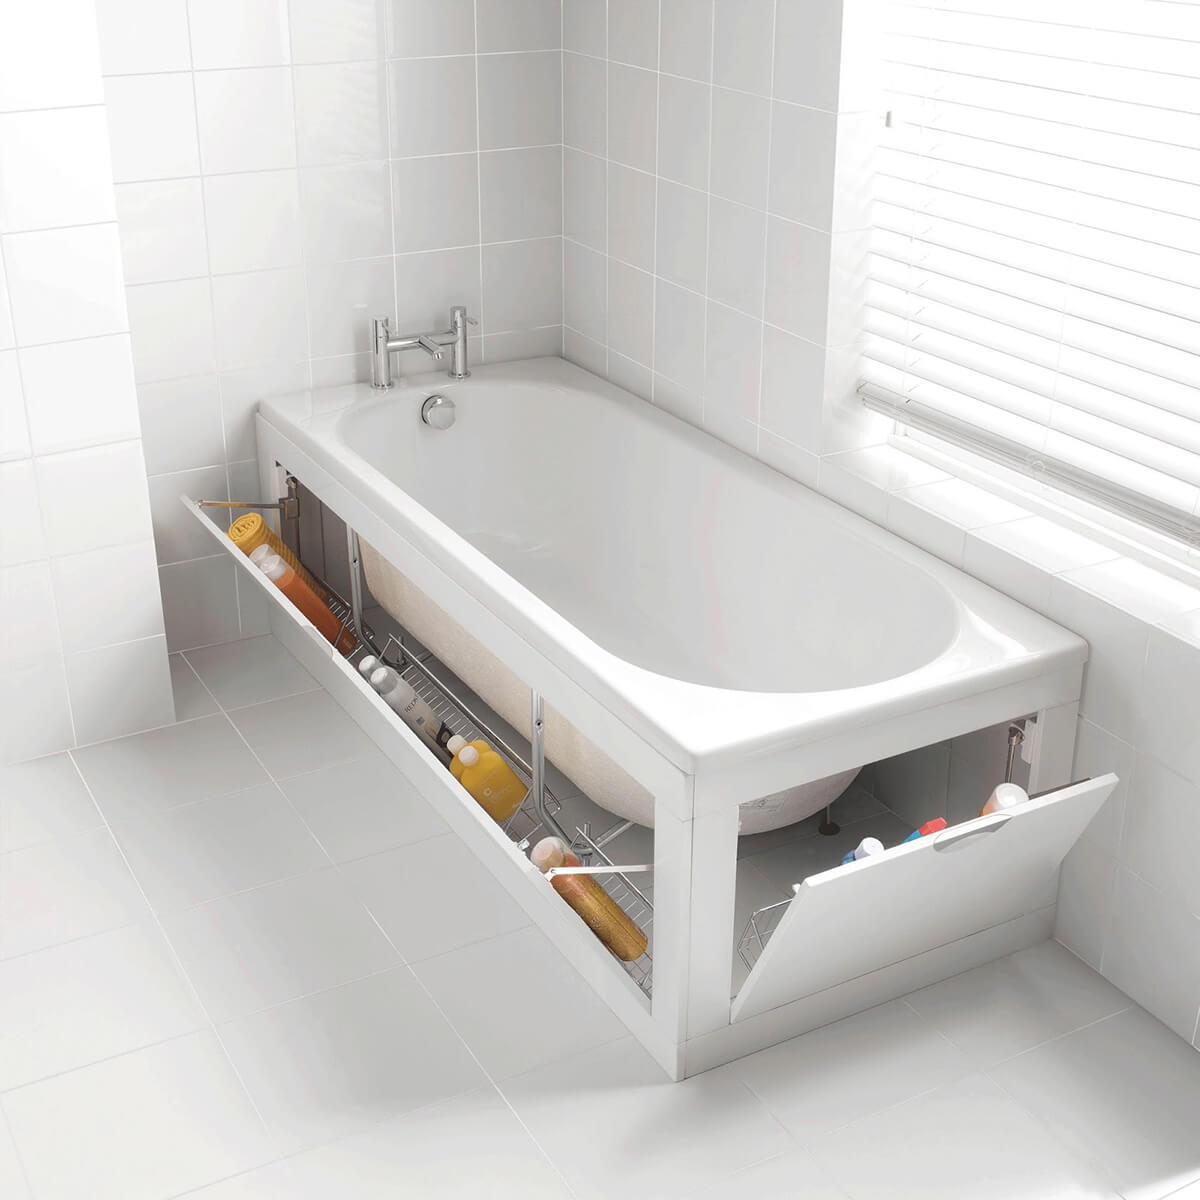 Ingenious Bathtub Storage for Small Bathrooms